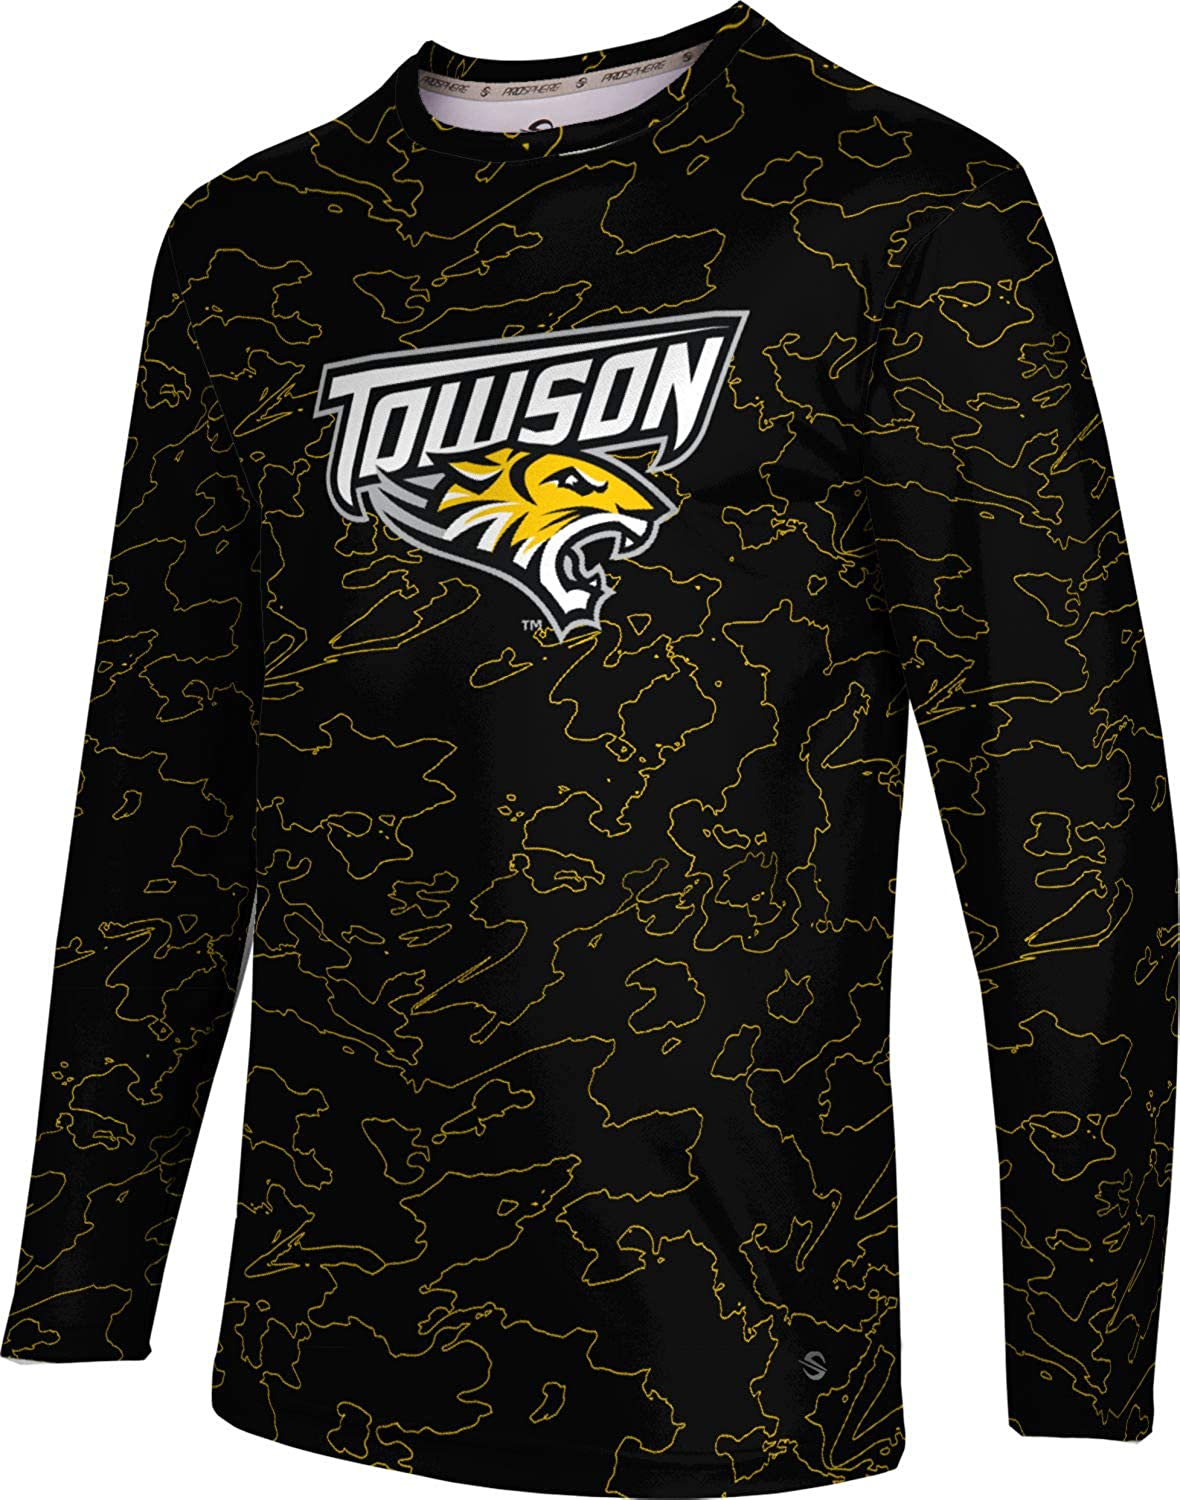 ProSphere Towson University Mens Long Sleeve Tee Topography